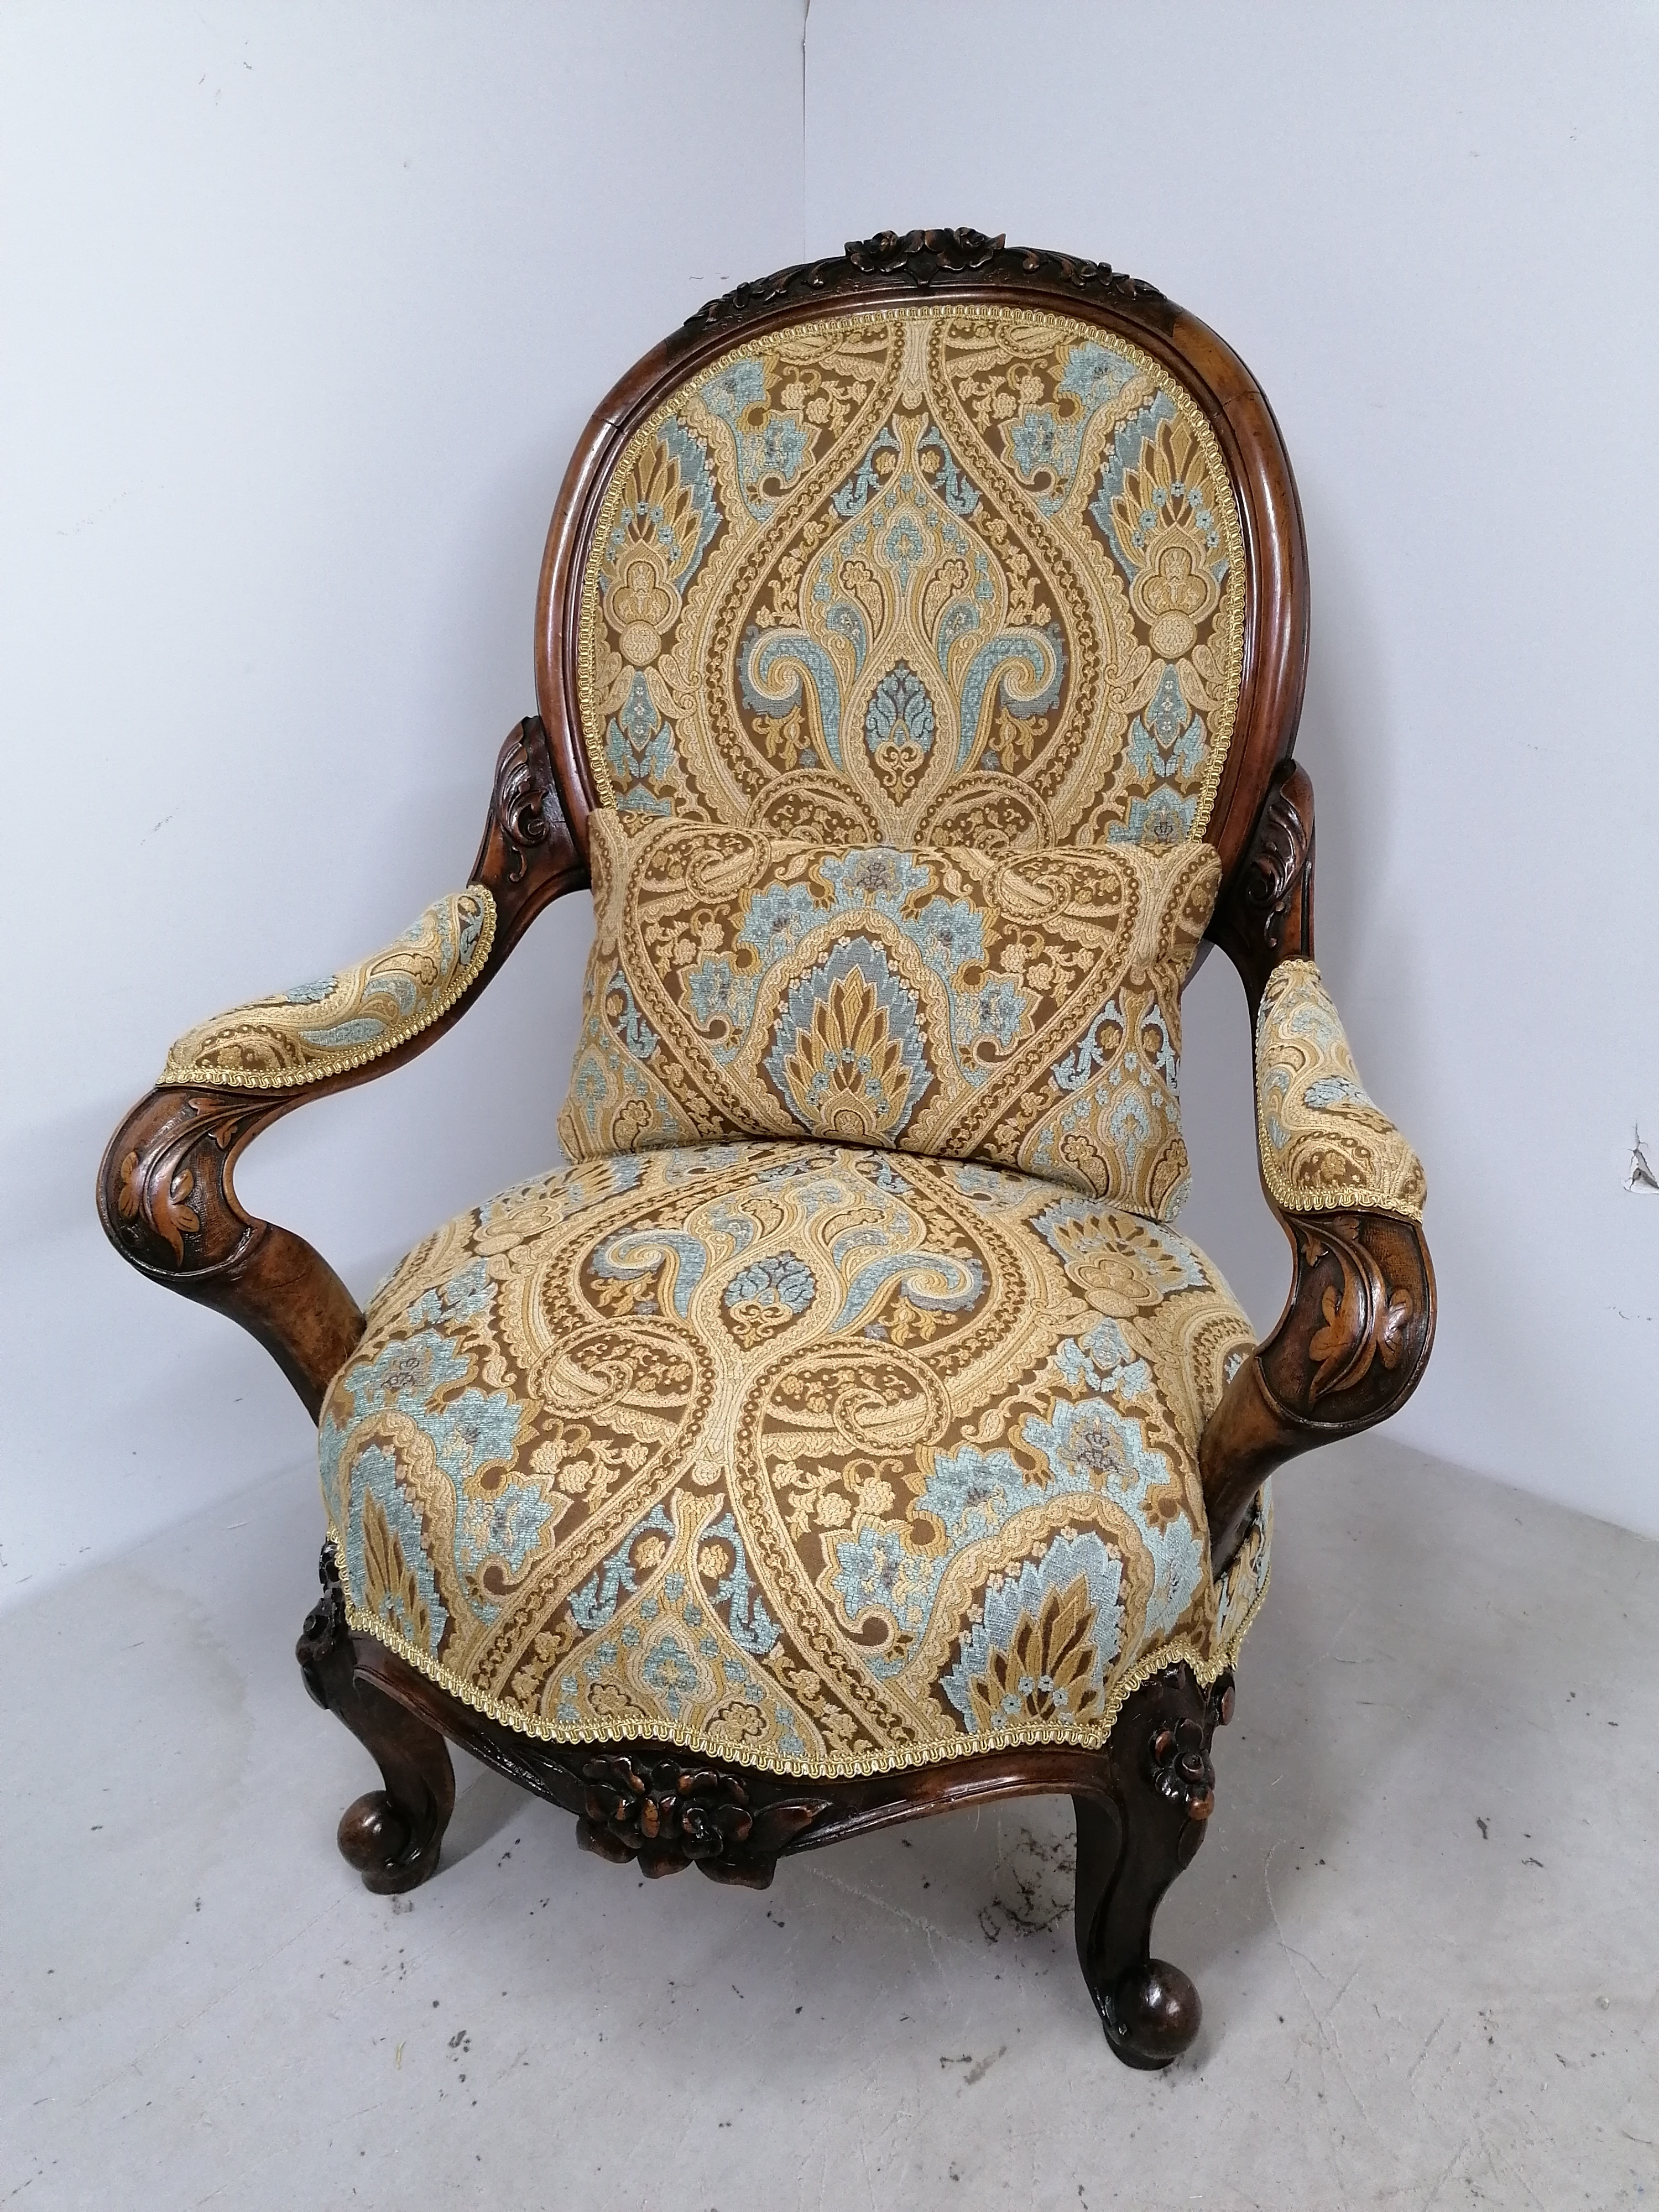 Stunning antique chair